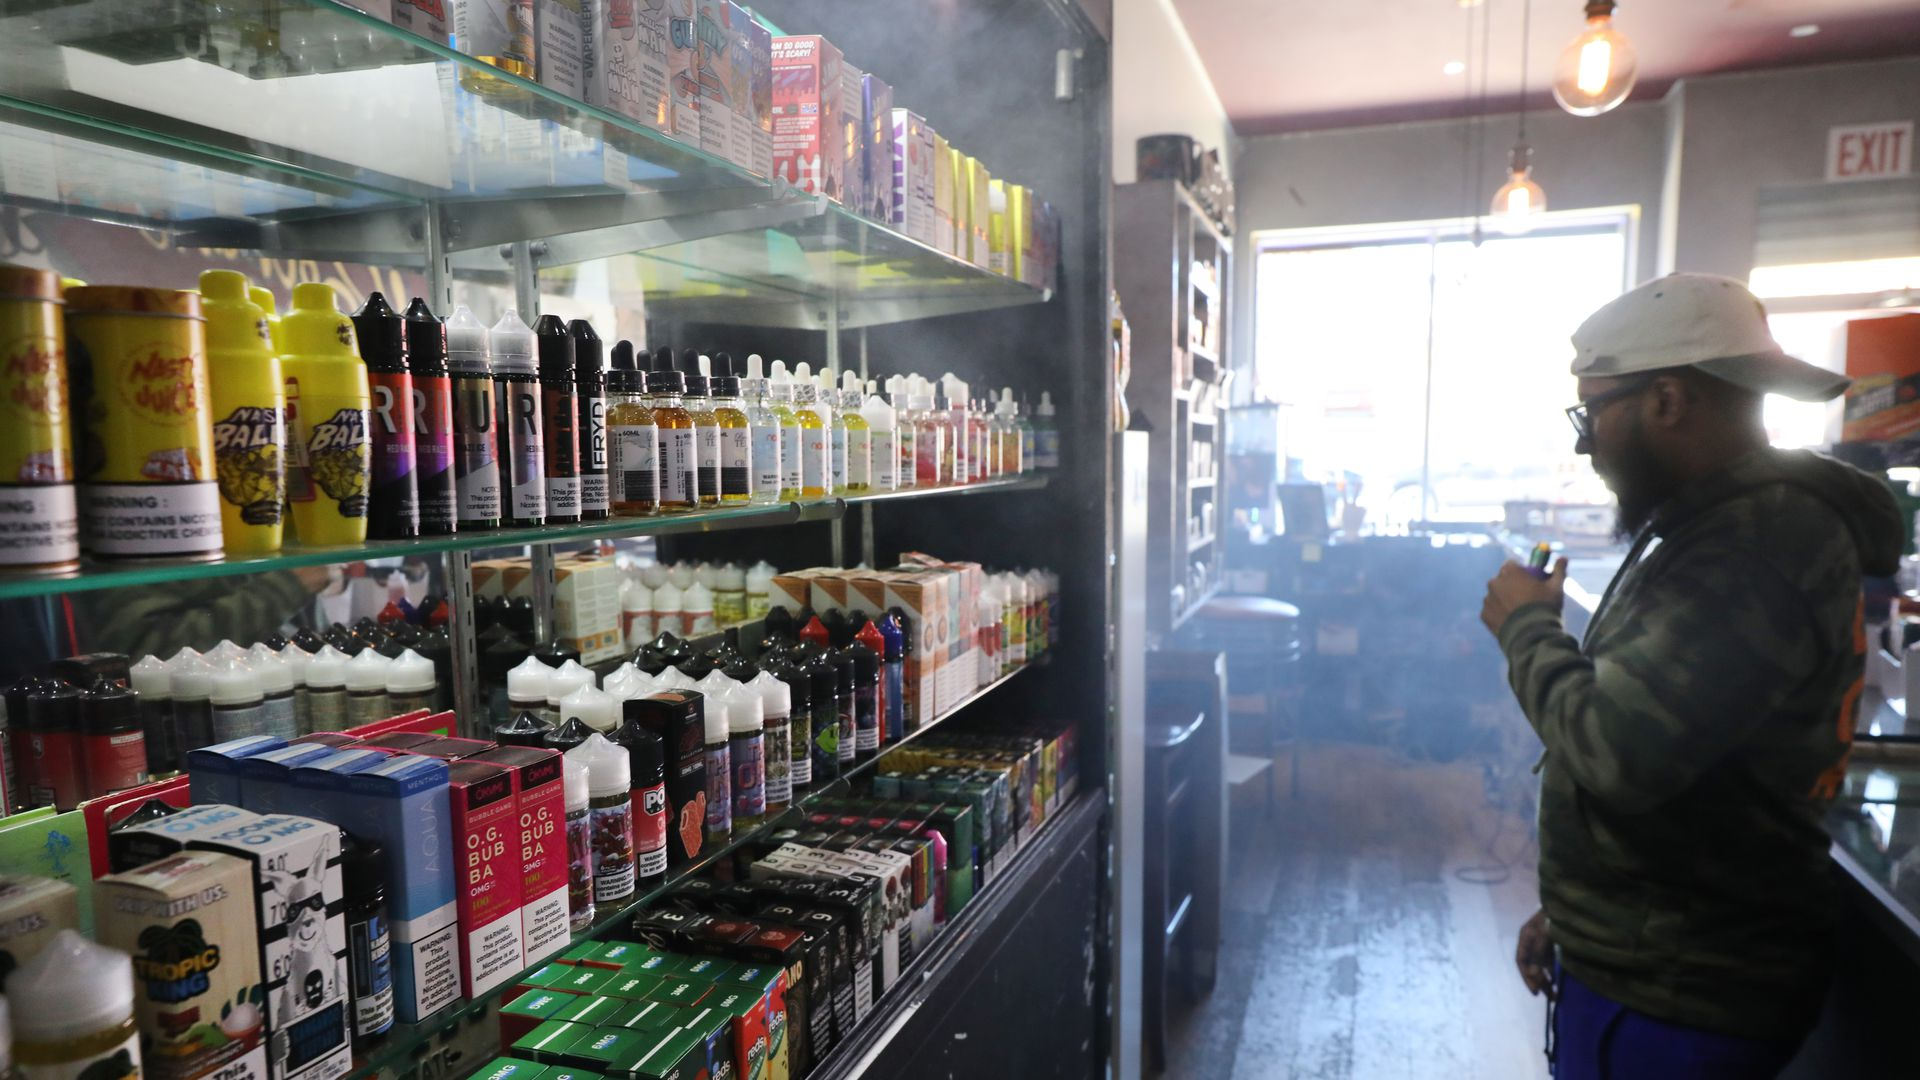 Vaping products, including flavored vape liquids and pods, are displayed at Gotham Vape in Queens, on September 17, 2019 in New York City.